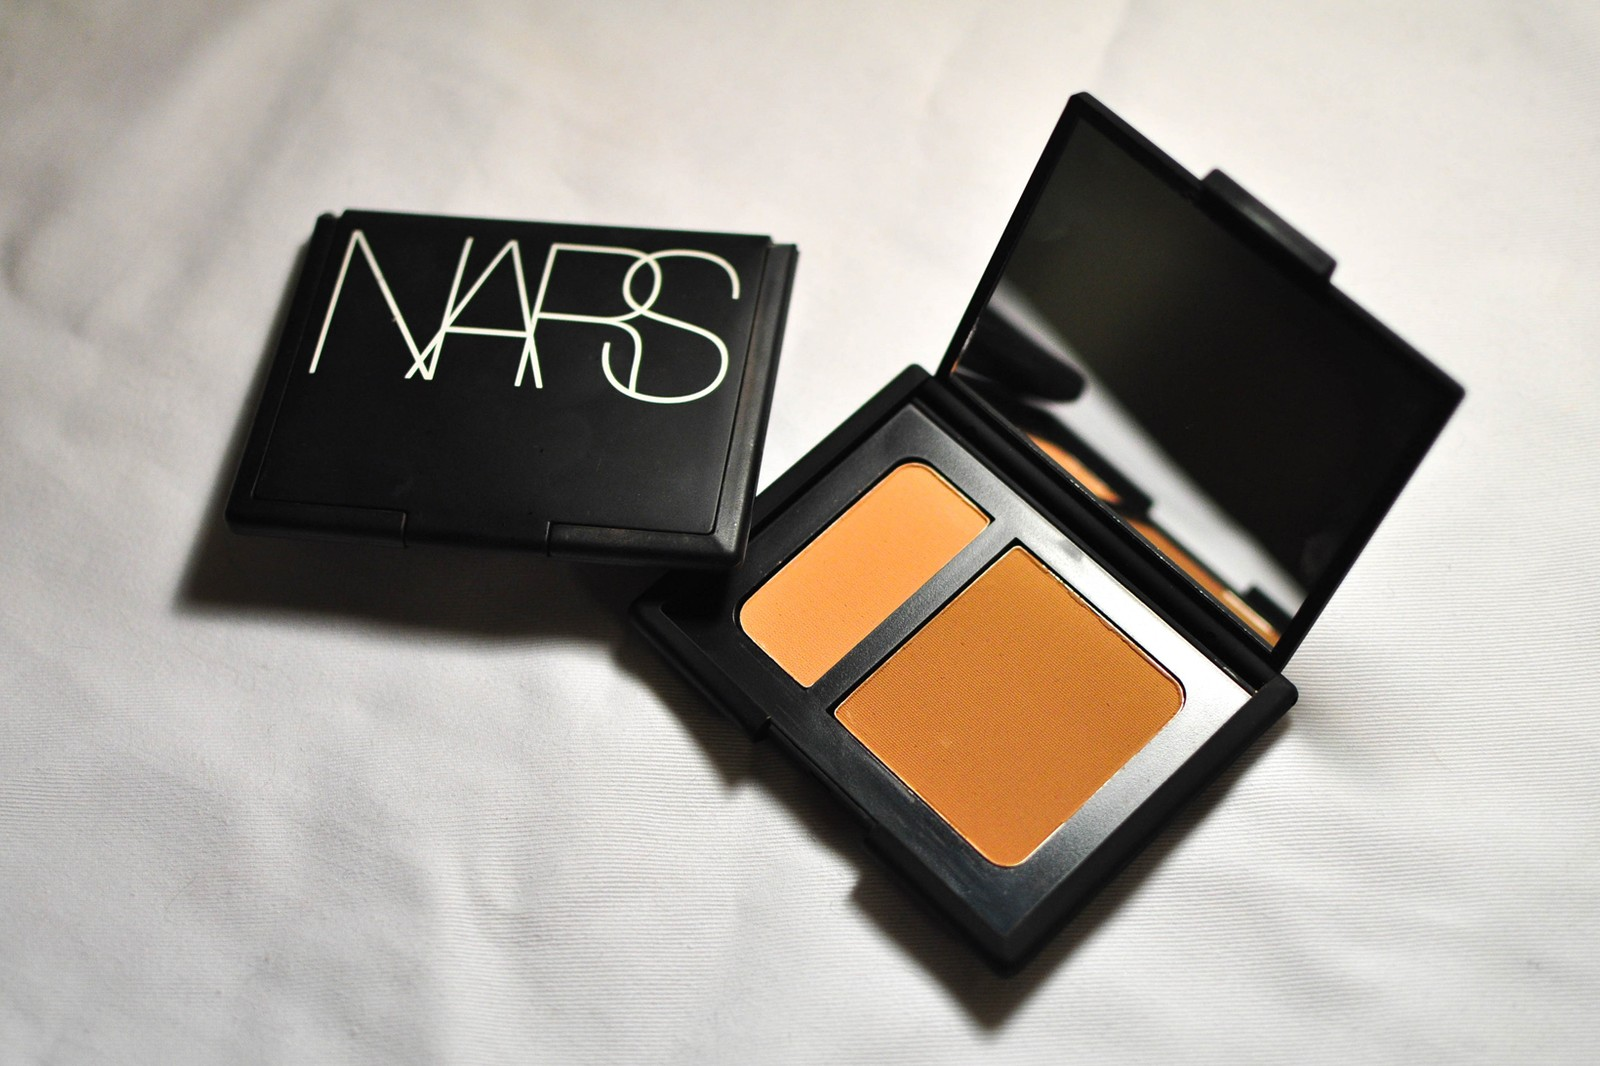 NARS Contour Blush Powder Talia Shade